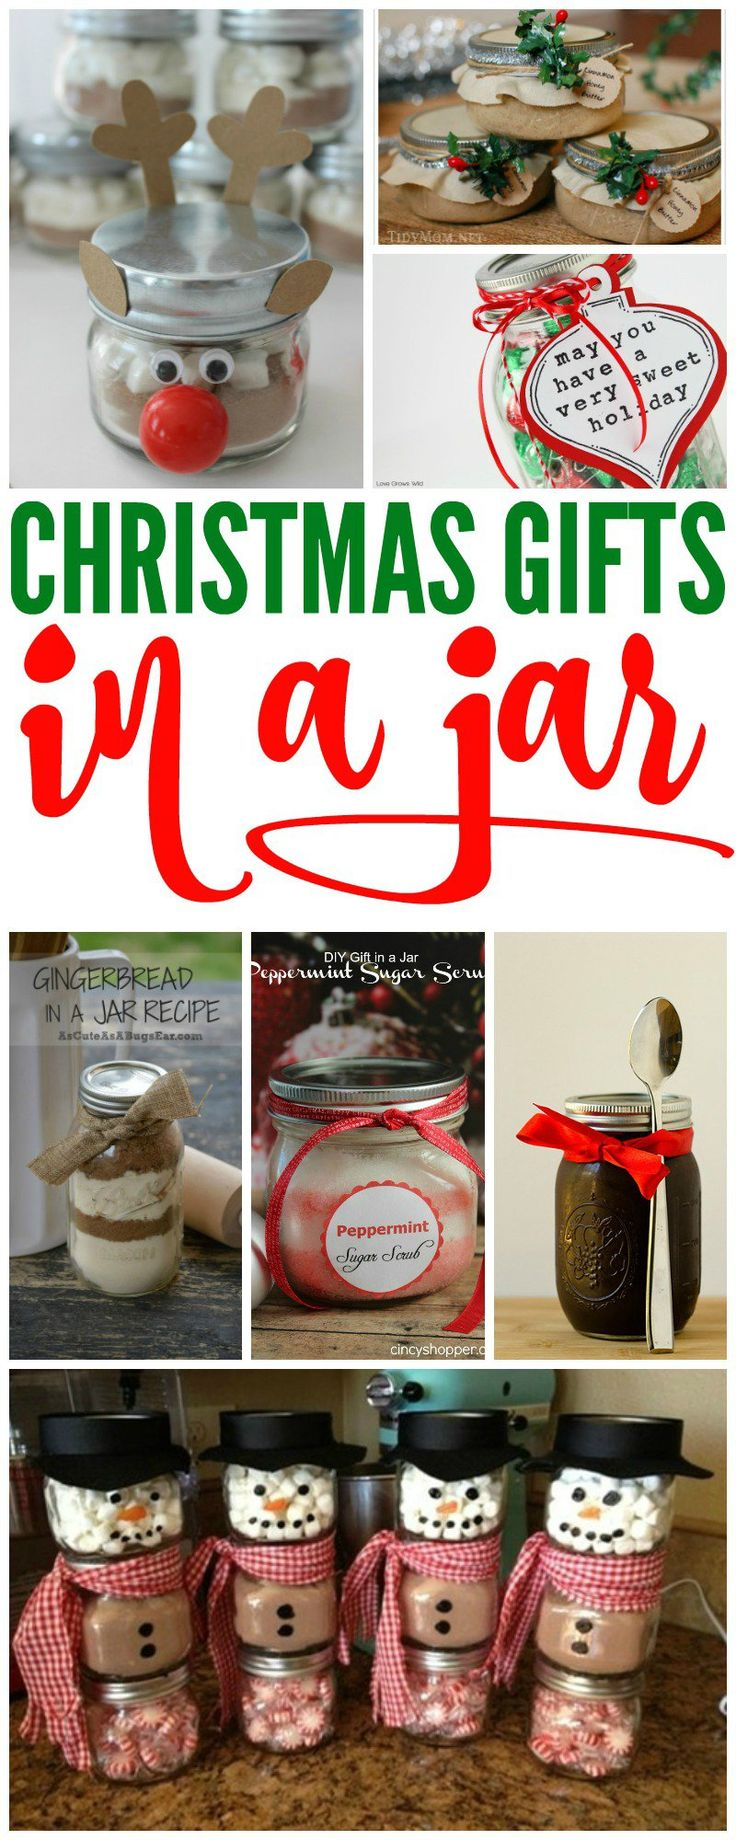 Best 25 christmas gift ideas ideas on pinterest creative best 25 christmas gift ideas ideas on pinterest creative christmas gifts diy xmas gifts and dyi gift ideas negle Image collections